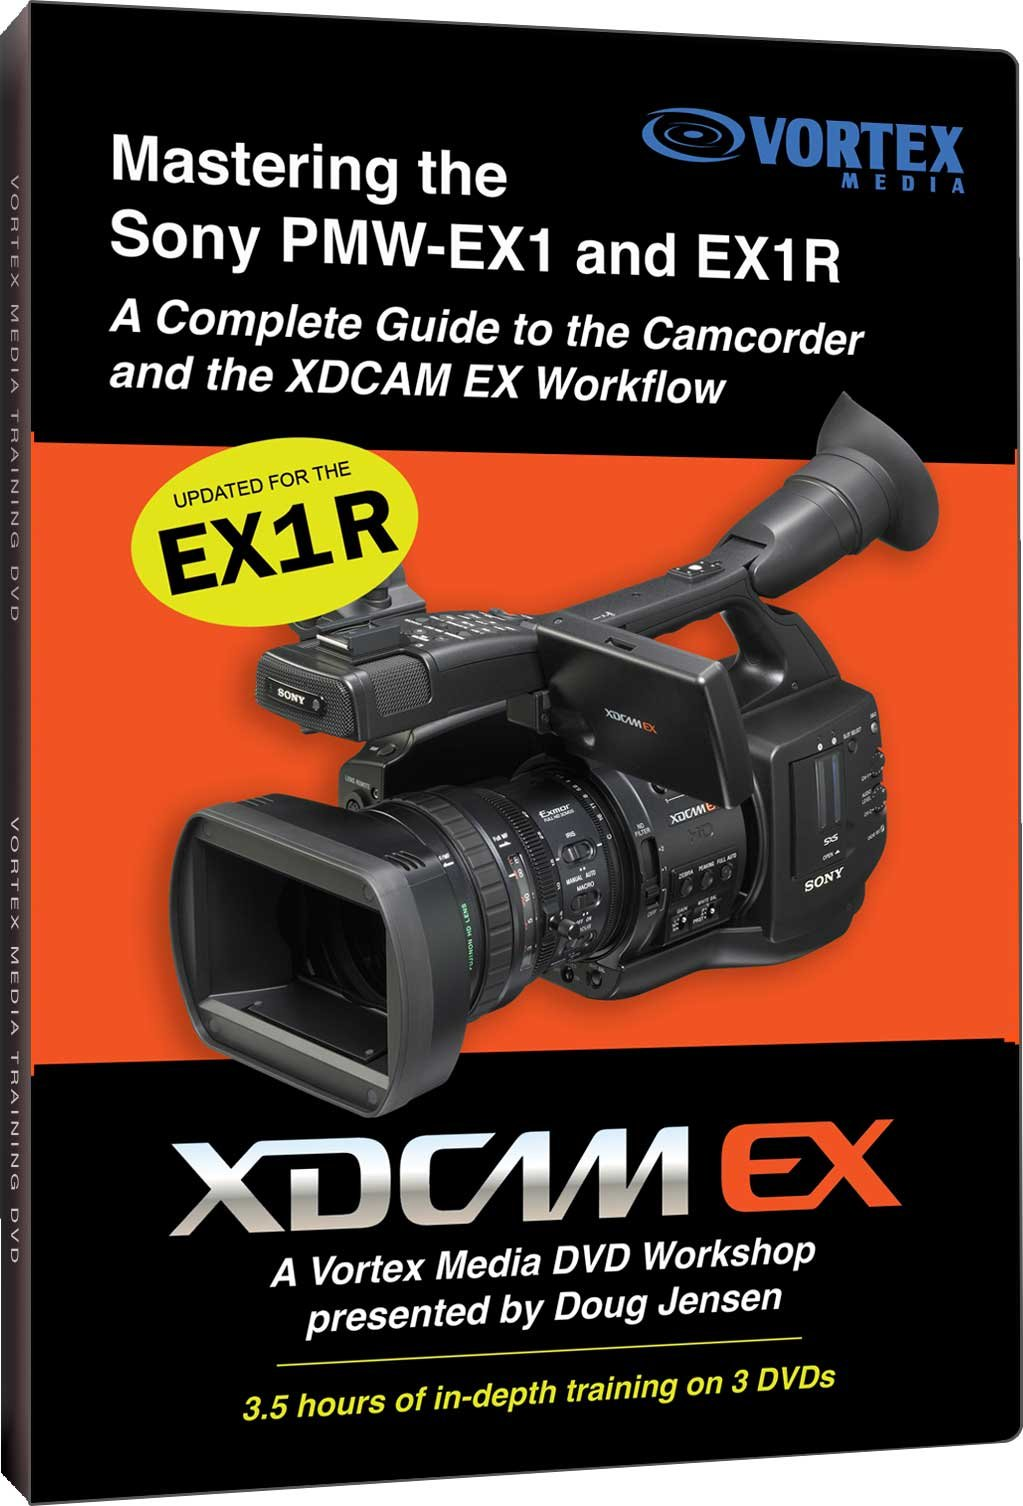 Mastering the Sony PMW-EX1 DVD